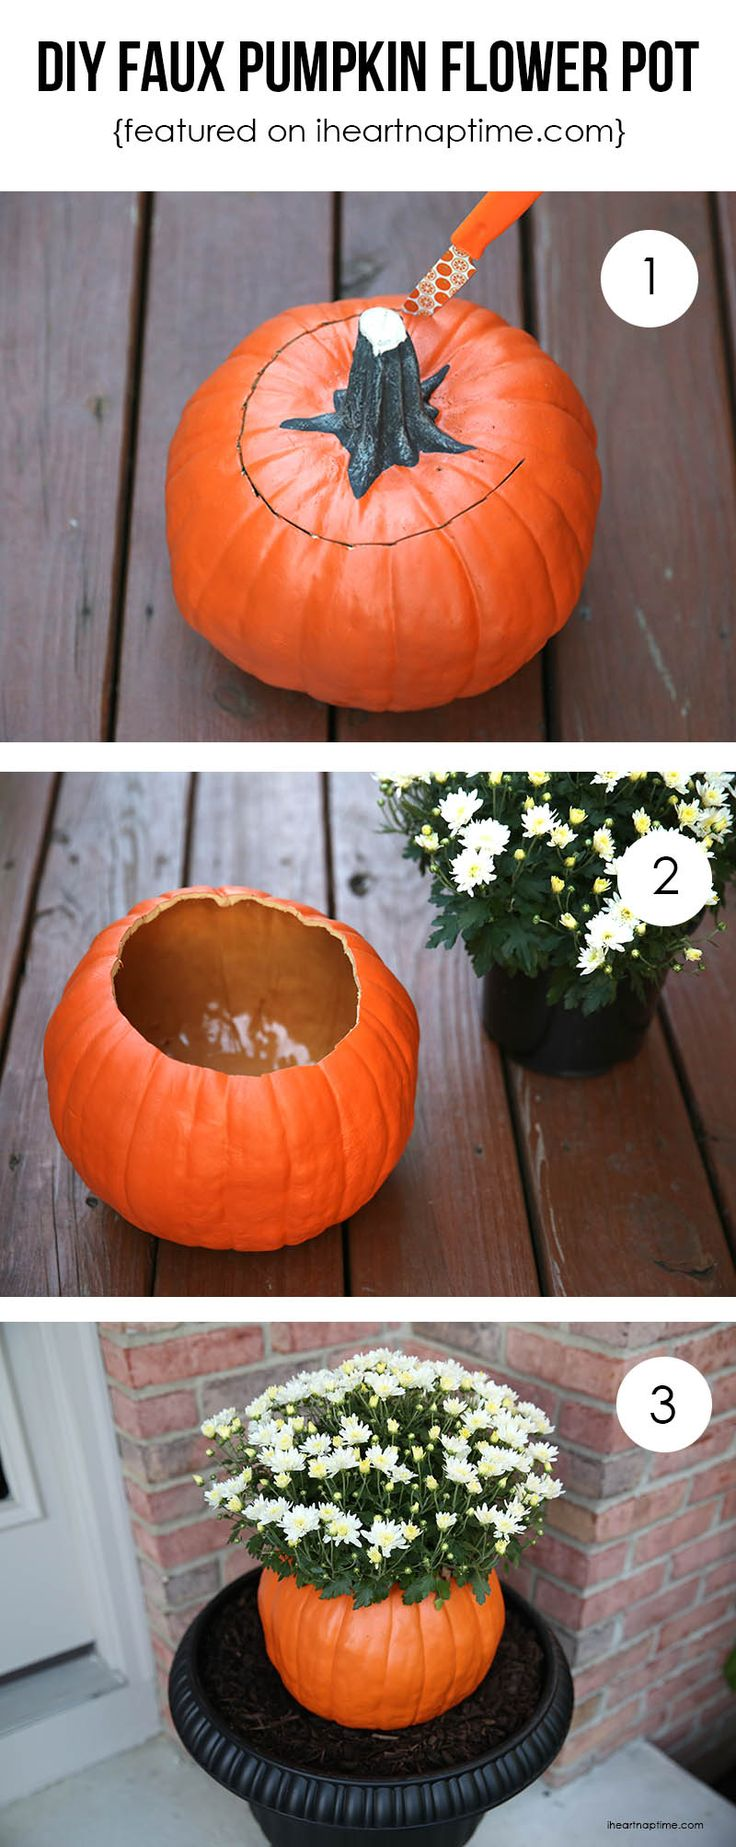 DIY faux pumpkin flower pot tutorial